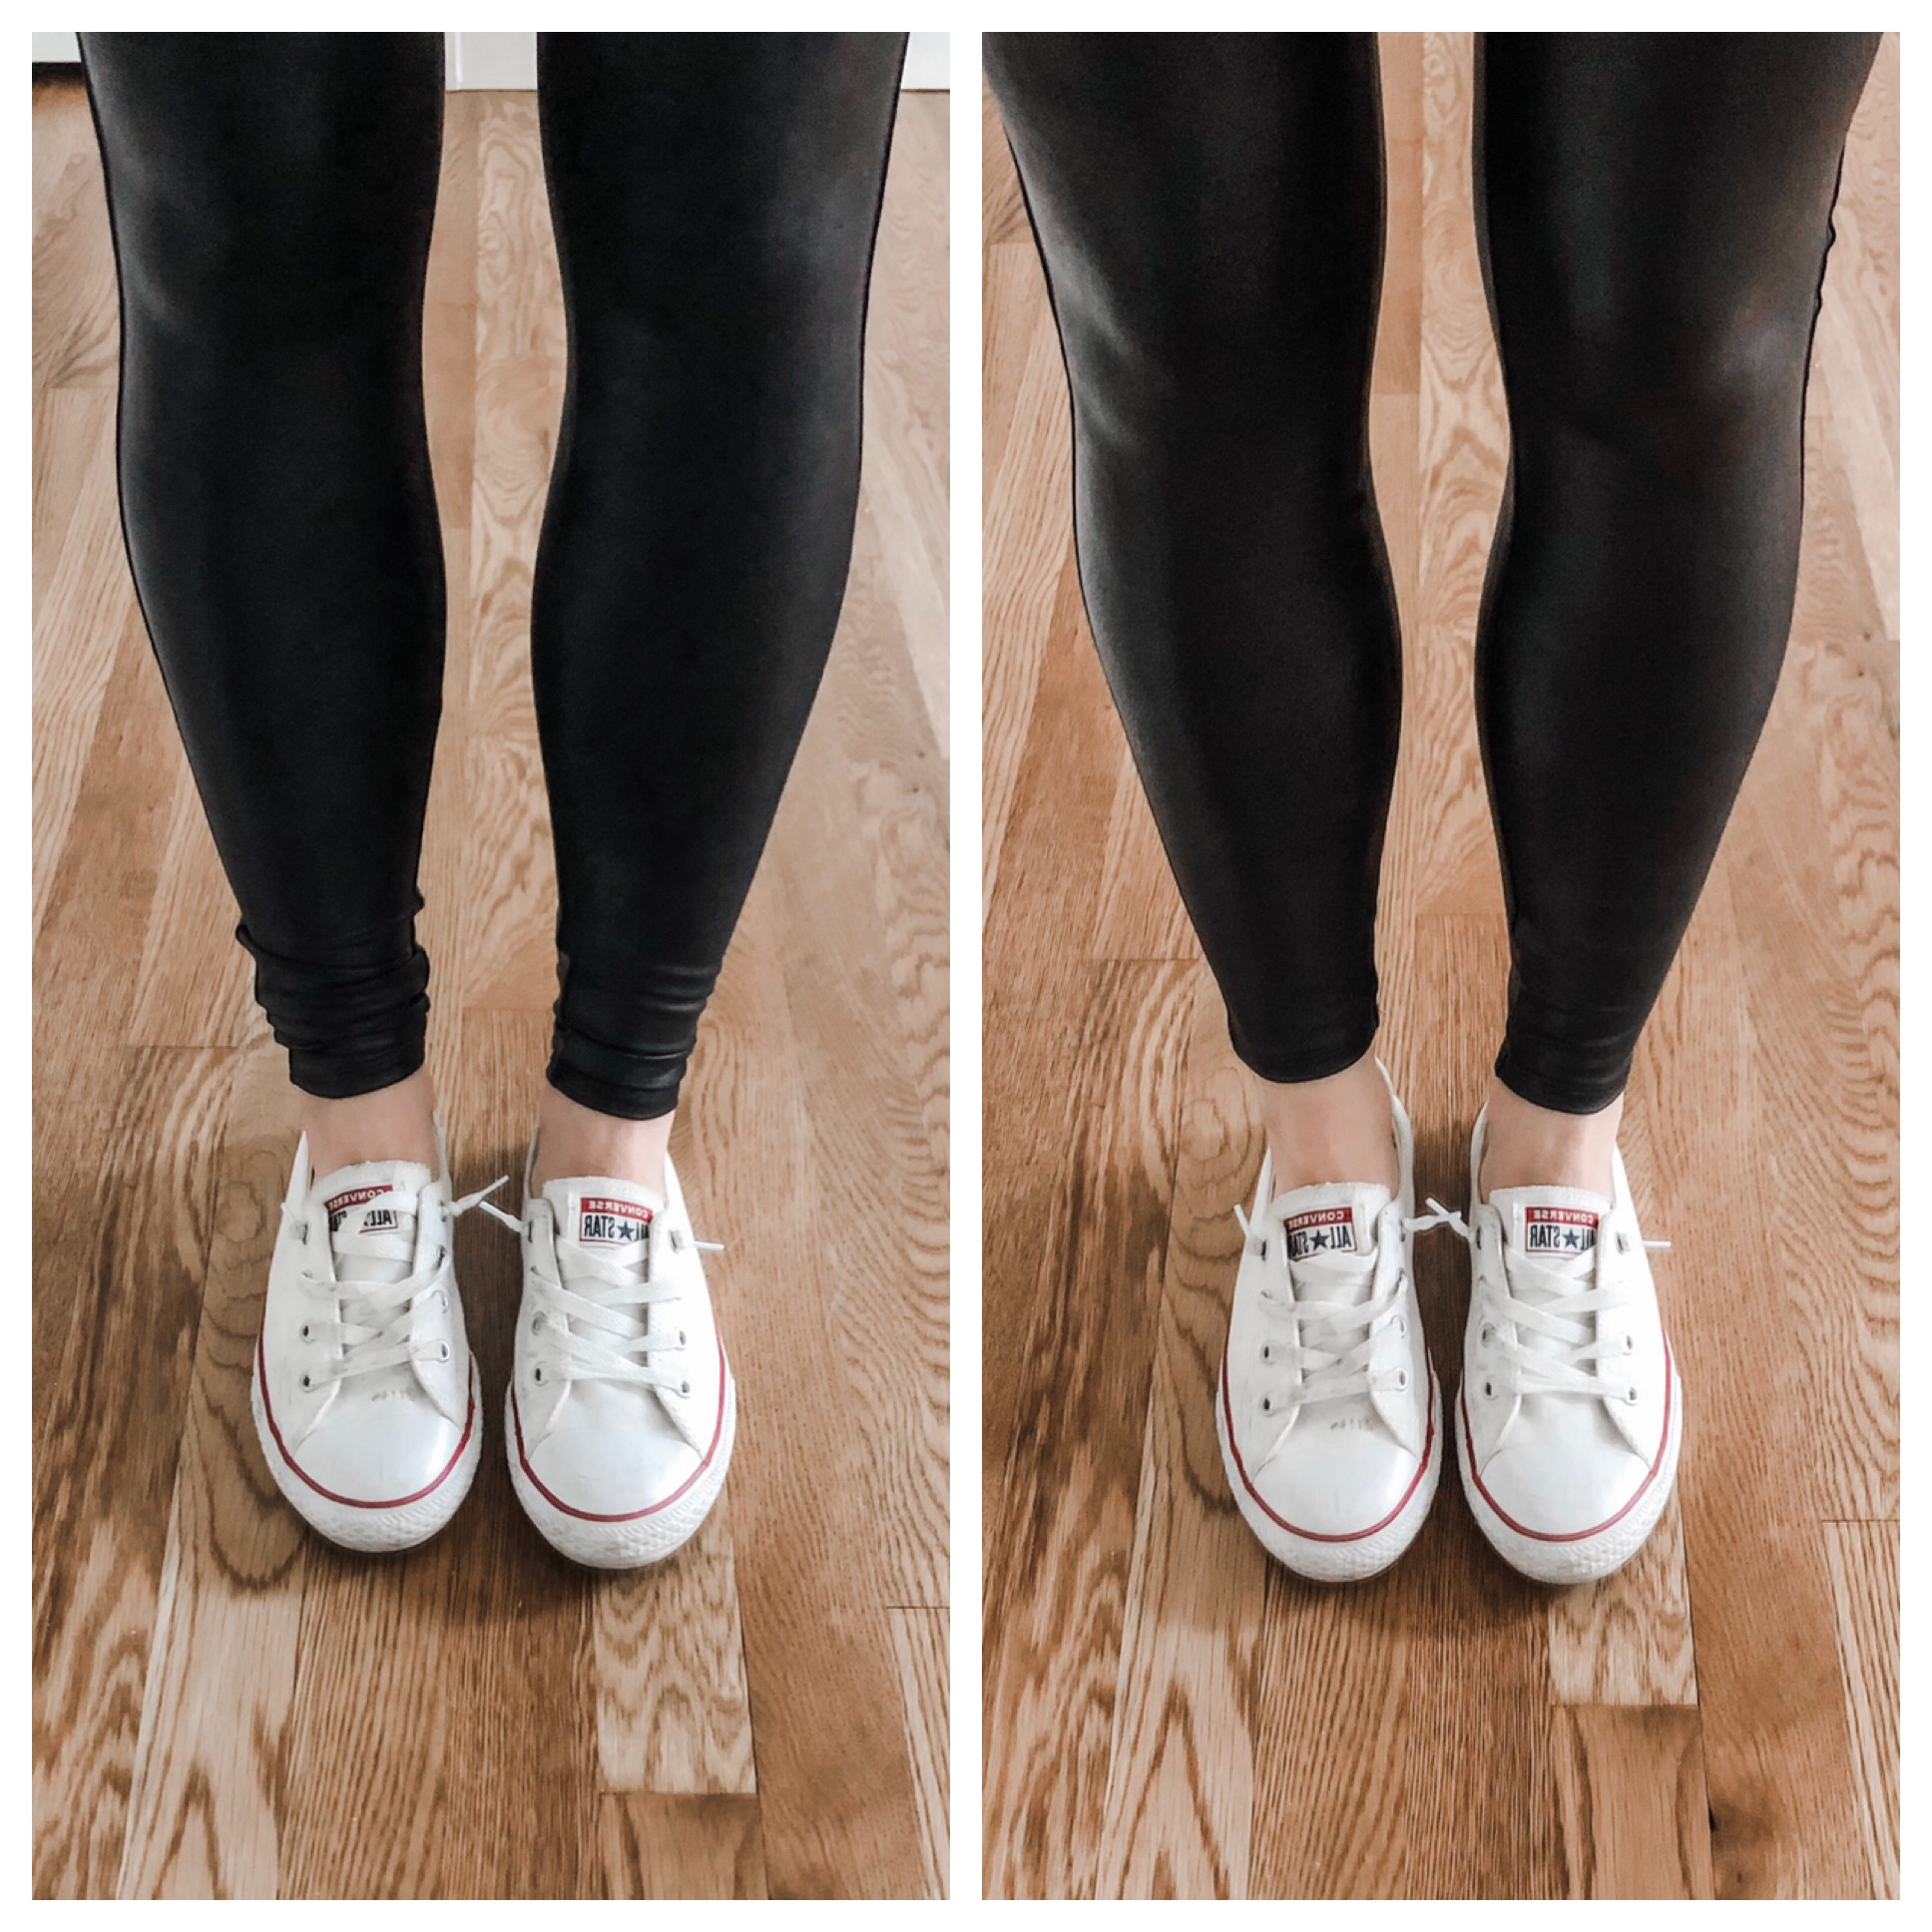 Are Spanx Faux Leather Leggings Worth The Money? + Other Questions Answered